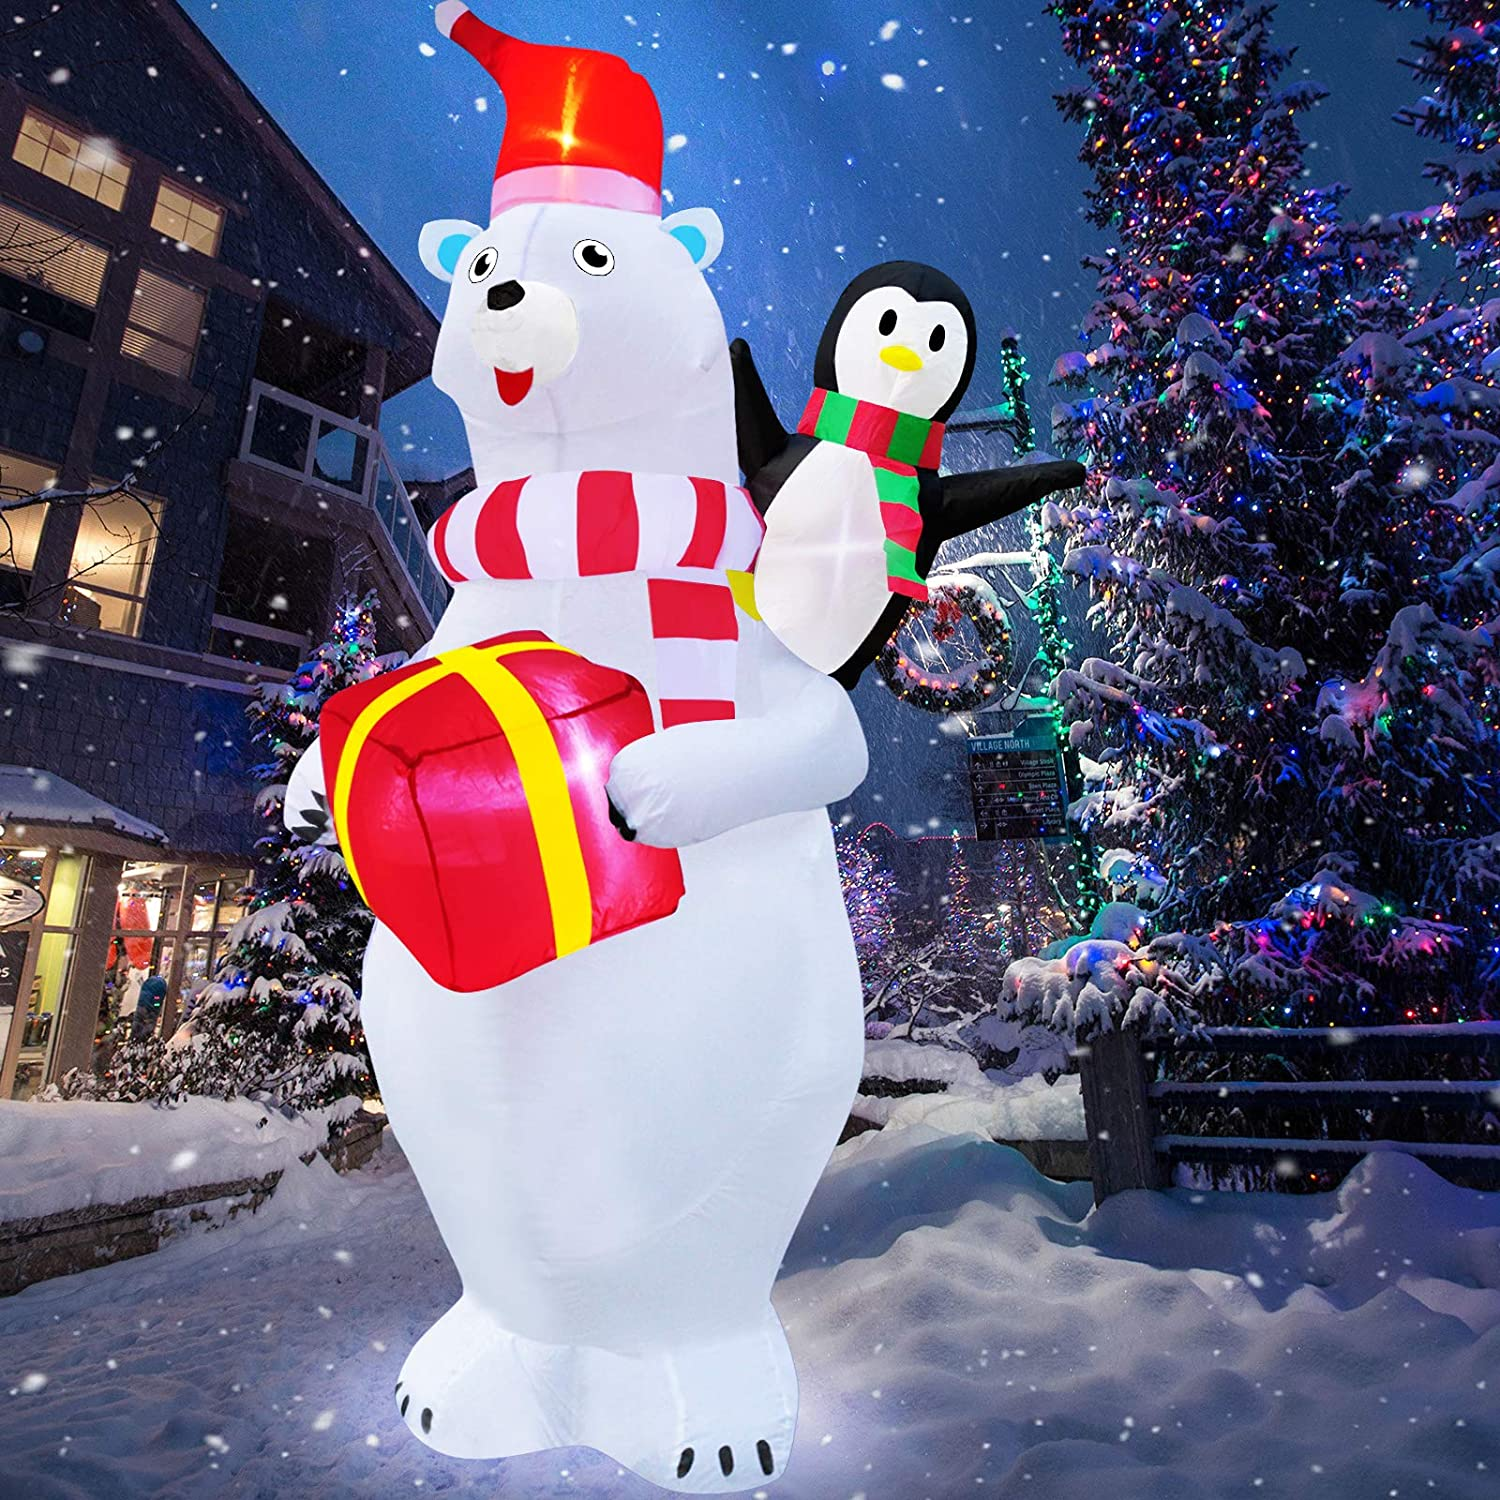 TURNMEON 8 Feet Christmas Inflatables Christmas Decoration Blow up Santa Polar Bear Penguin with Tether Stakes LED Lighted Holiday Xmas Yard Decoration Outdoor Lawn Garden Home Party Decor